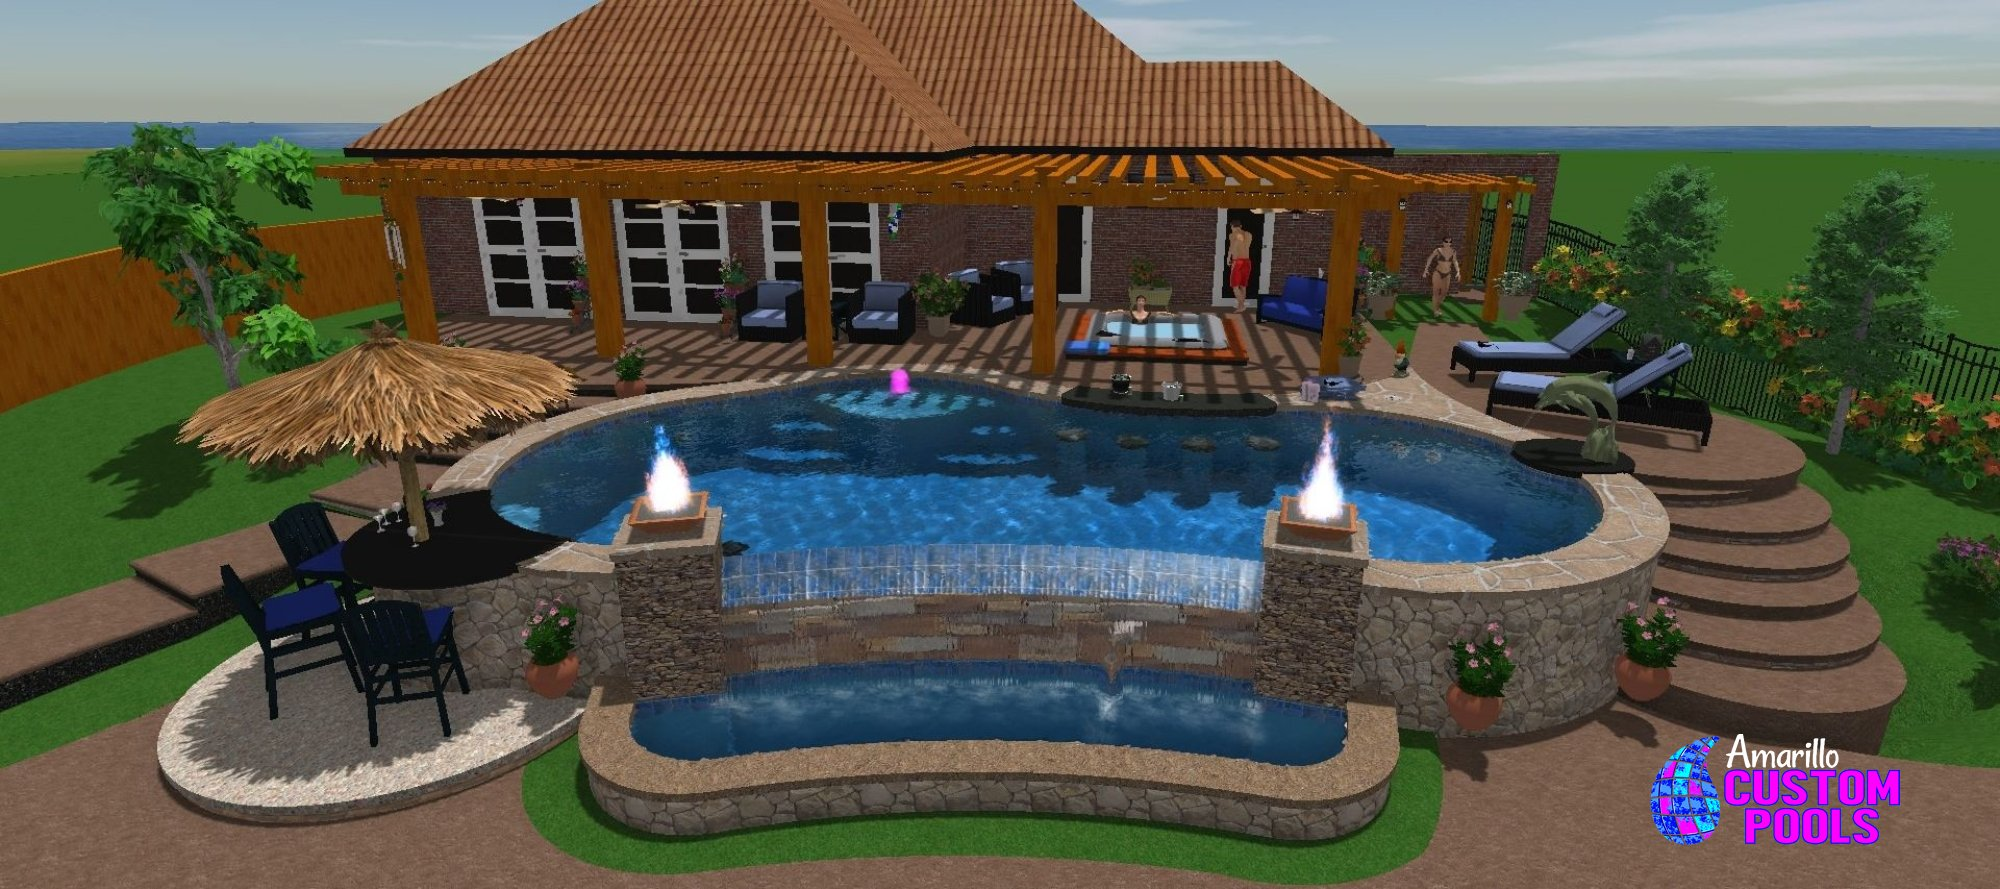 Swimming pool design services amarillo texas for Pool design services